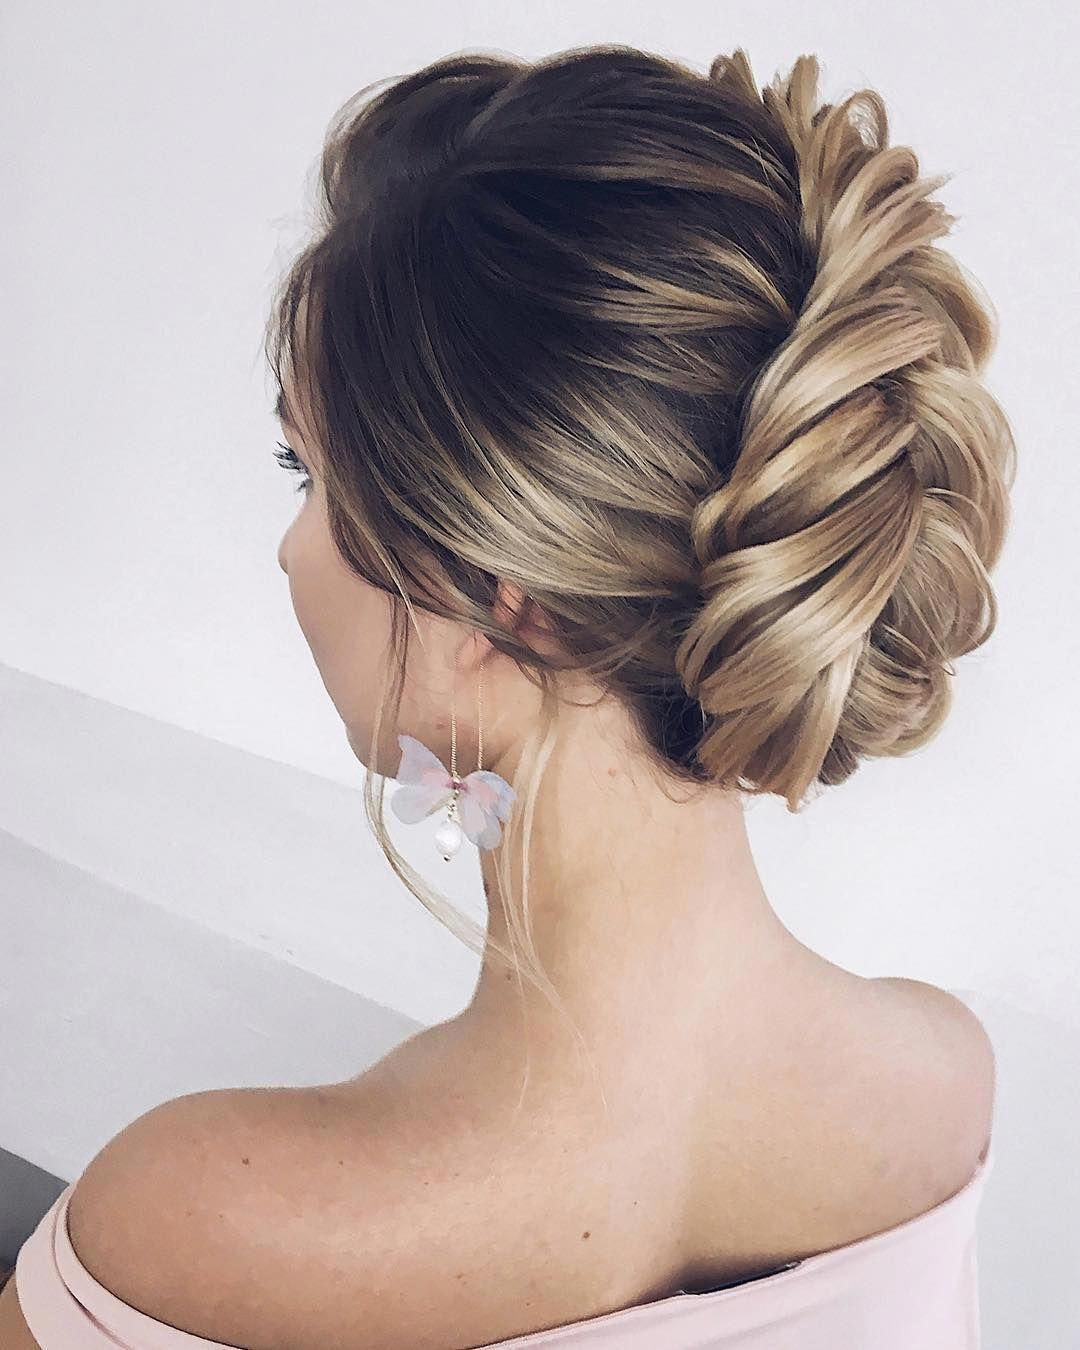 """Textured wedding updo hairstyle ,messy updo wedding hairstyles ,chignon , messy updo hairstyles ,bridal updo <a class=""""pintag"""" href=""""/explore/wedding/"""" title=""""#wedding explore Pinterest"""">#wedding</a> <a class=""""pintag"""" href=""""/explore/weddinghair/"""" title=""""#weddinghair explore Pinterest"""">#weddinghair</a> <a class=""""pintag"""" href=""""/explore/weddinghairstyles/"""" title=""""#weddinghairstyles explore Pinterest"""">#weddinghairstyles</a> <a class=""""pintag"""" href=""""/explore/hairstyles/"""" title=""""#hairstyles explore Pinterest"""">#hairstyles</a> <a class=""""pintag"""" href=""""/explore/updo/"""" title=""""#updo explore Pinterest"""">#updo</a> <a class=""""pintag"""" href=""""/explore/promhairstyle/"""" title=""""#promhairstyle explore Pinterest"""">#promhairstyle</a> <a class=""""pintag"""" href=""""/explore/uniqueweddinghairstyles/"""" title=""""#uniqueweddinghairstyles explore Pinterest"""">#uniqueweddinghairstyles</a><p><a href=""""http://www.homeinteriordesign.org/2018/02/short-guide-to-interior-decoration.html"""">Short guide to interior decoration</a></p>"""